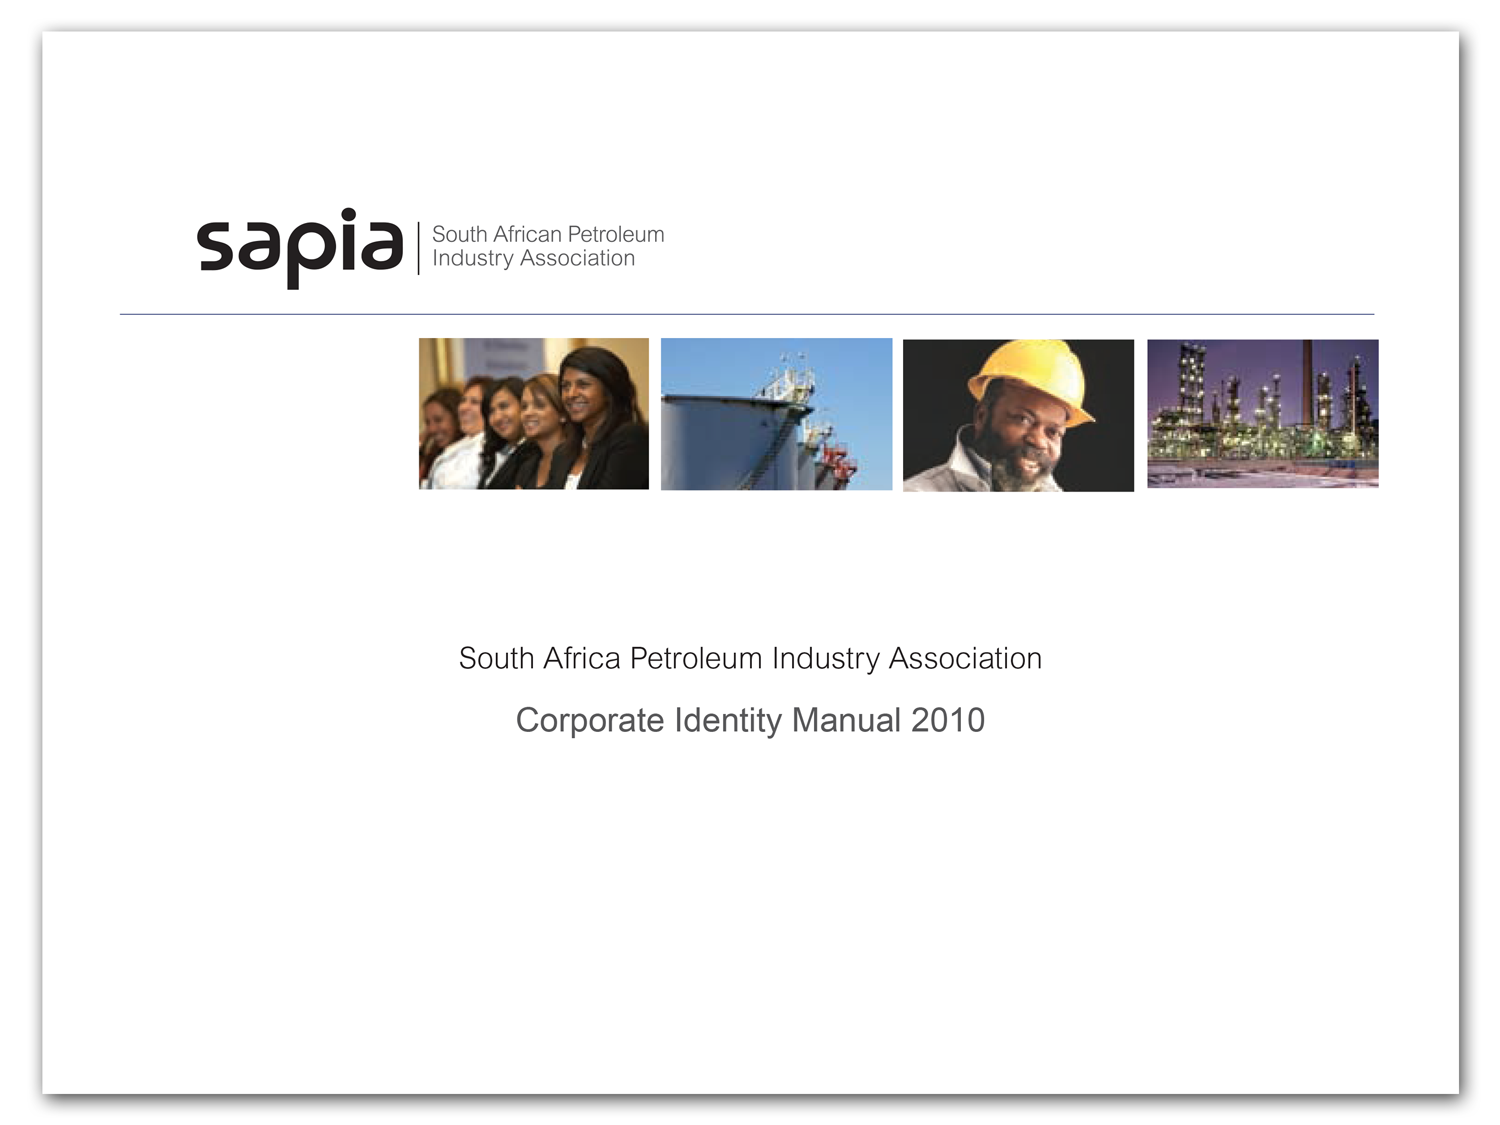 sapia-ci-manual